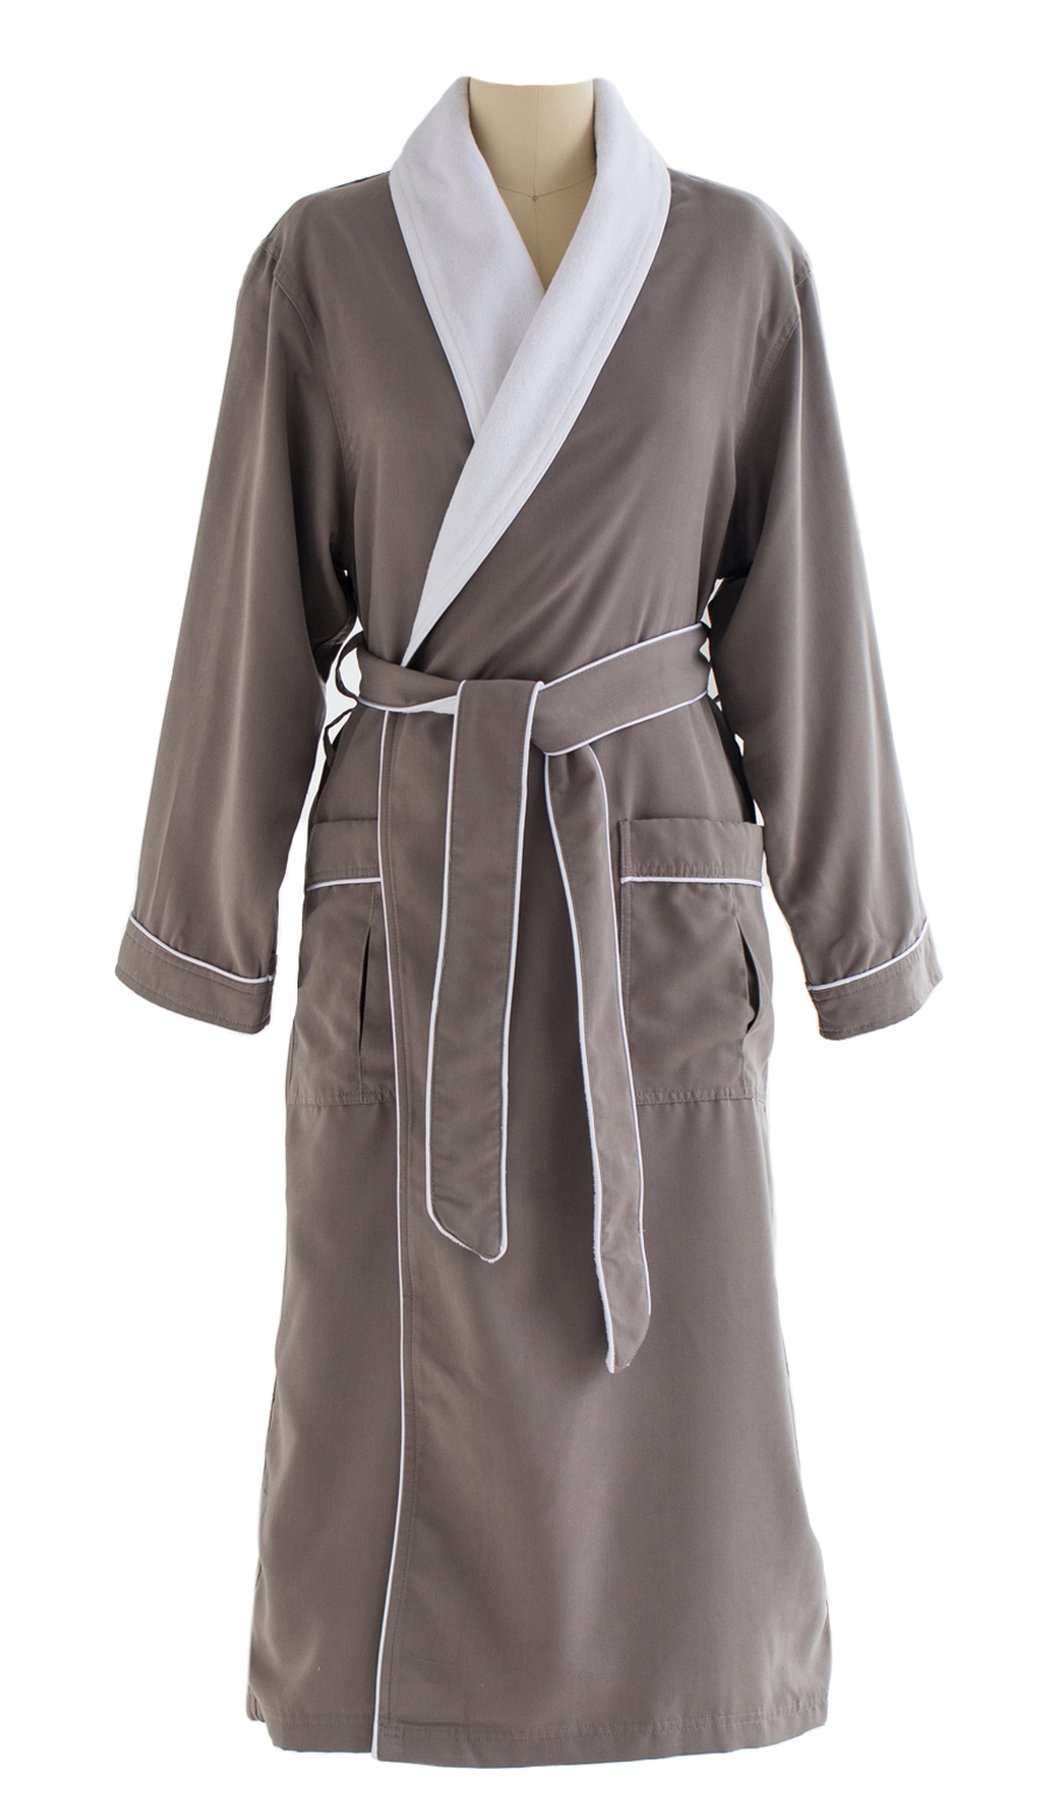 Ultimate Doeskin Microfiber Bathrobe Lined In Terry - Luxury Spa Bathrobe for Women and Men - Smoke/White - X-Small